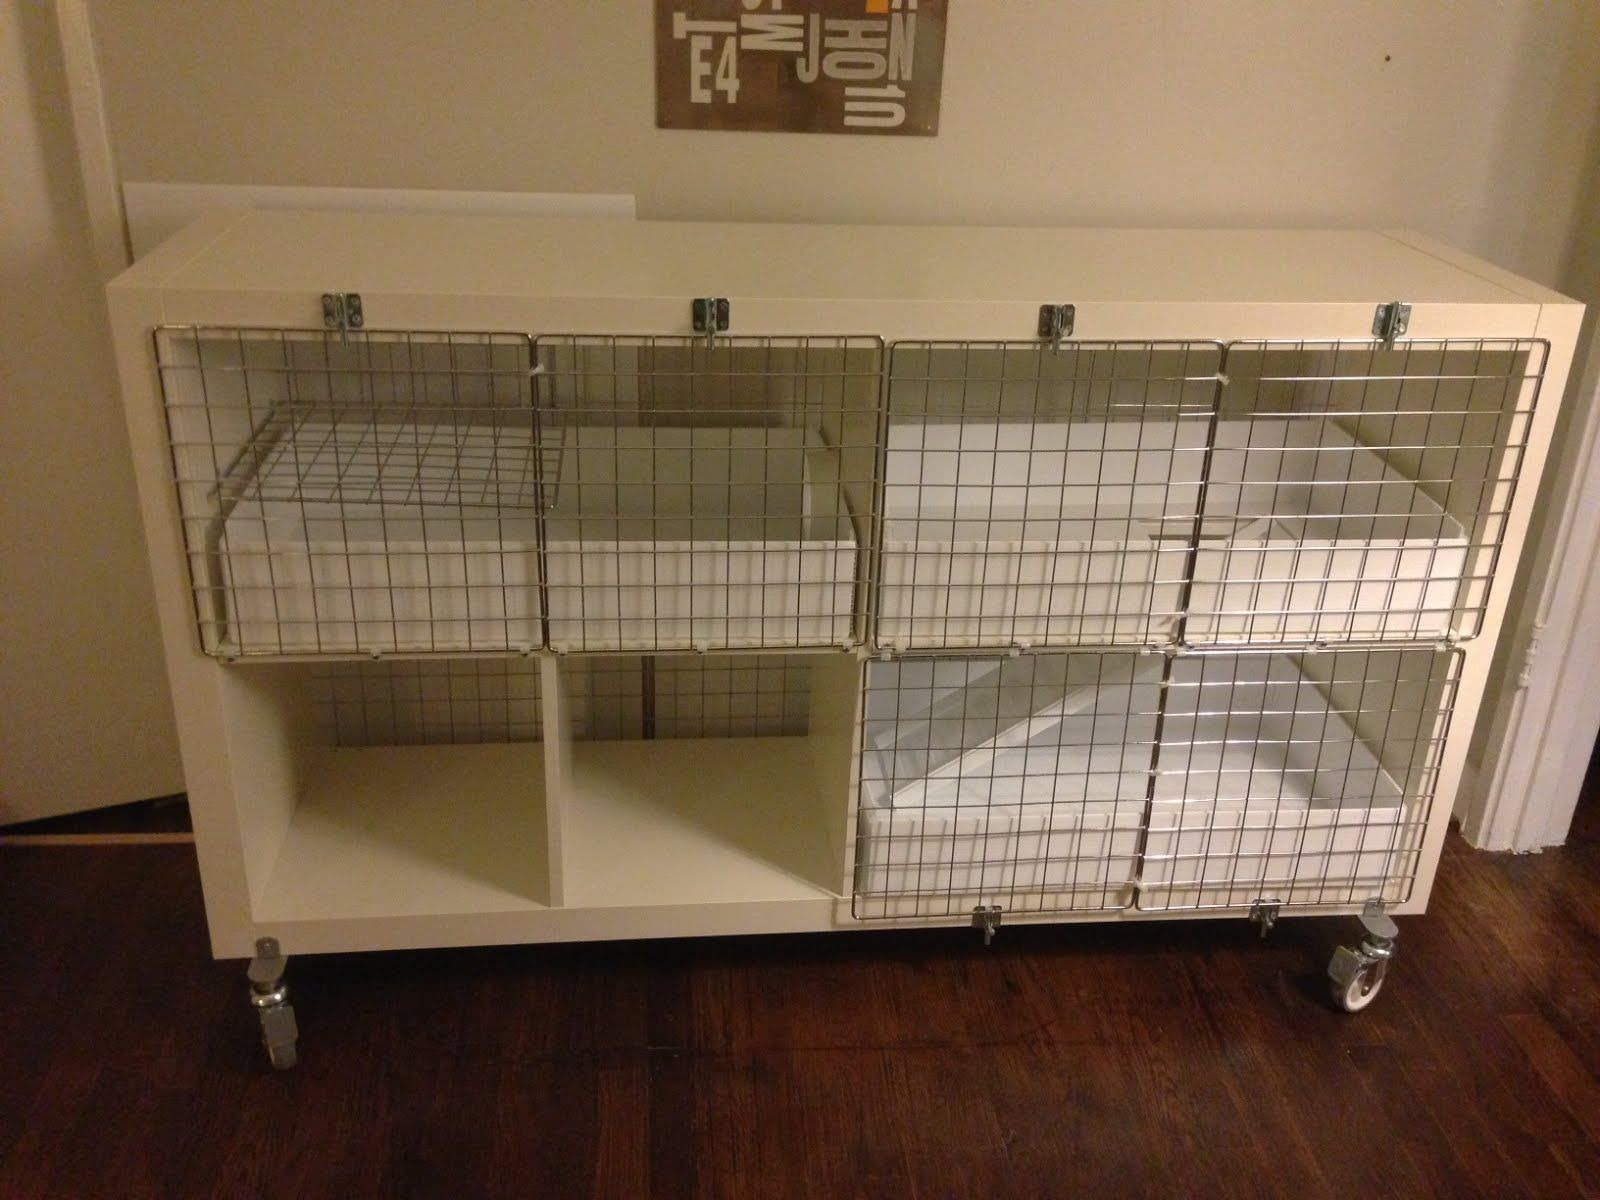 Diy Cage For Rabbit Awesome Ideas For Guinea Pig Hutch And Cages Diy Guinea